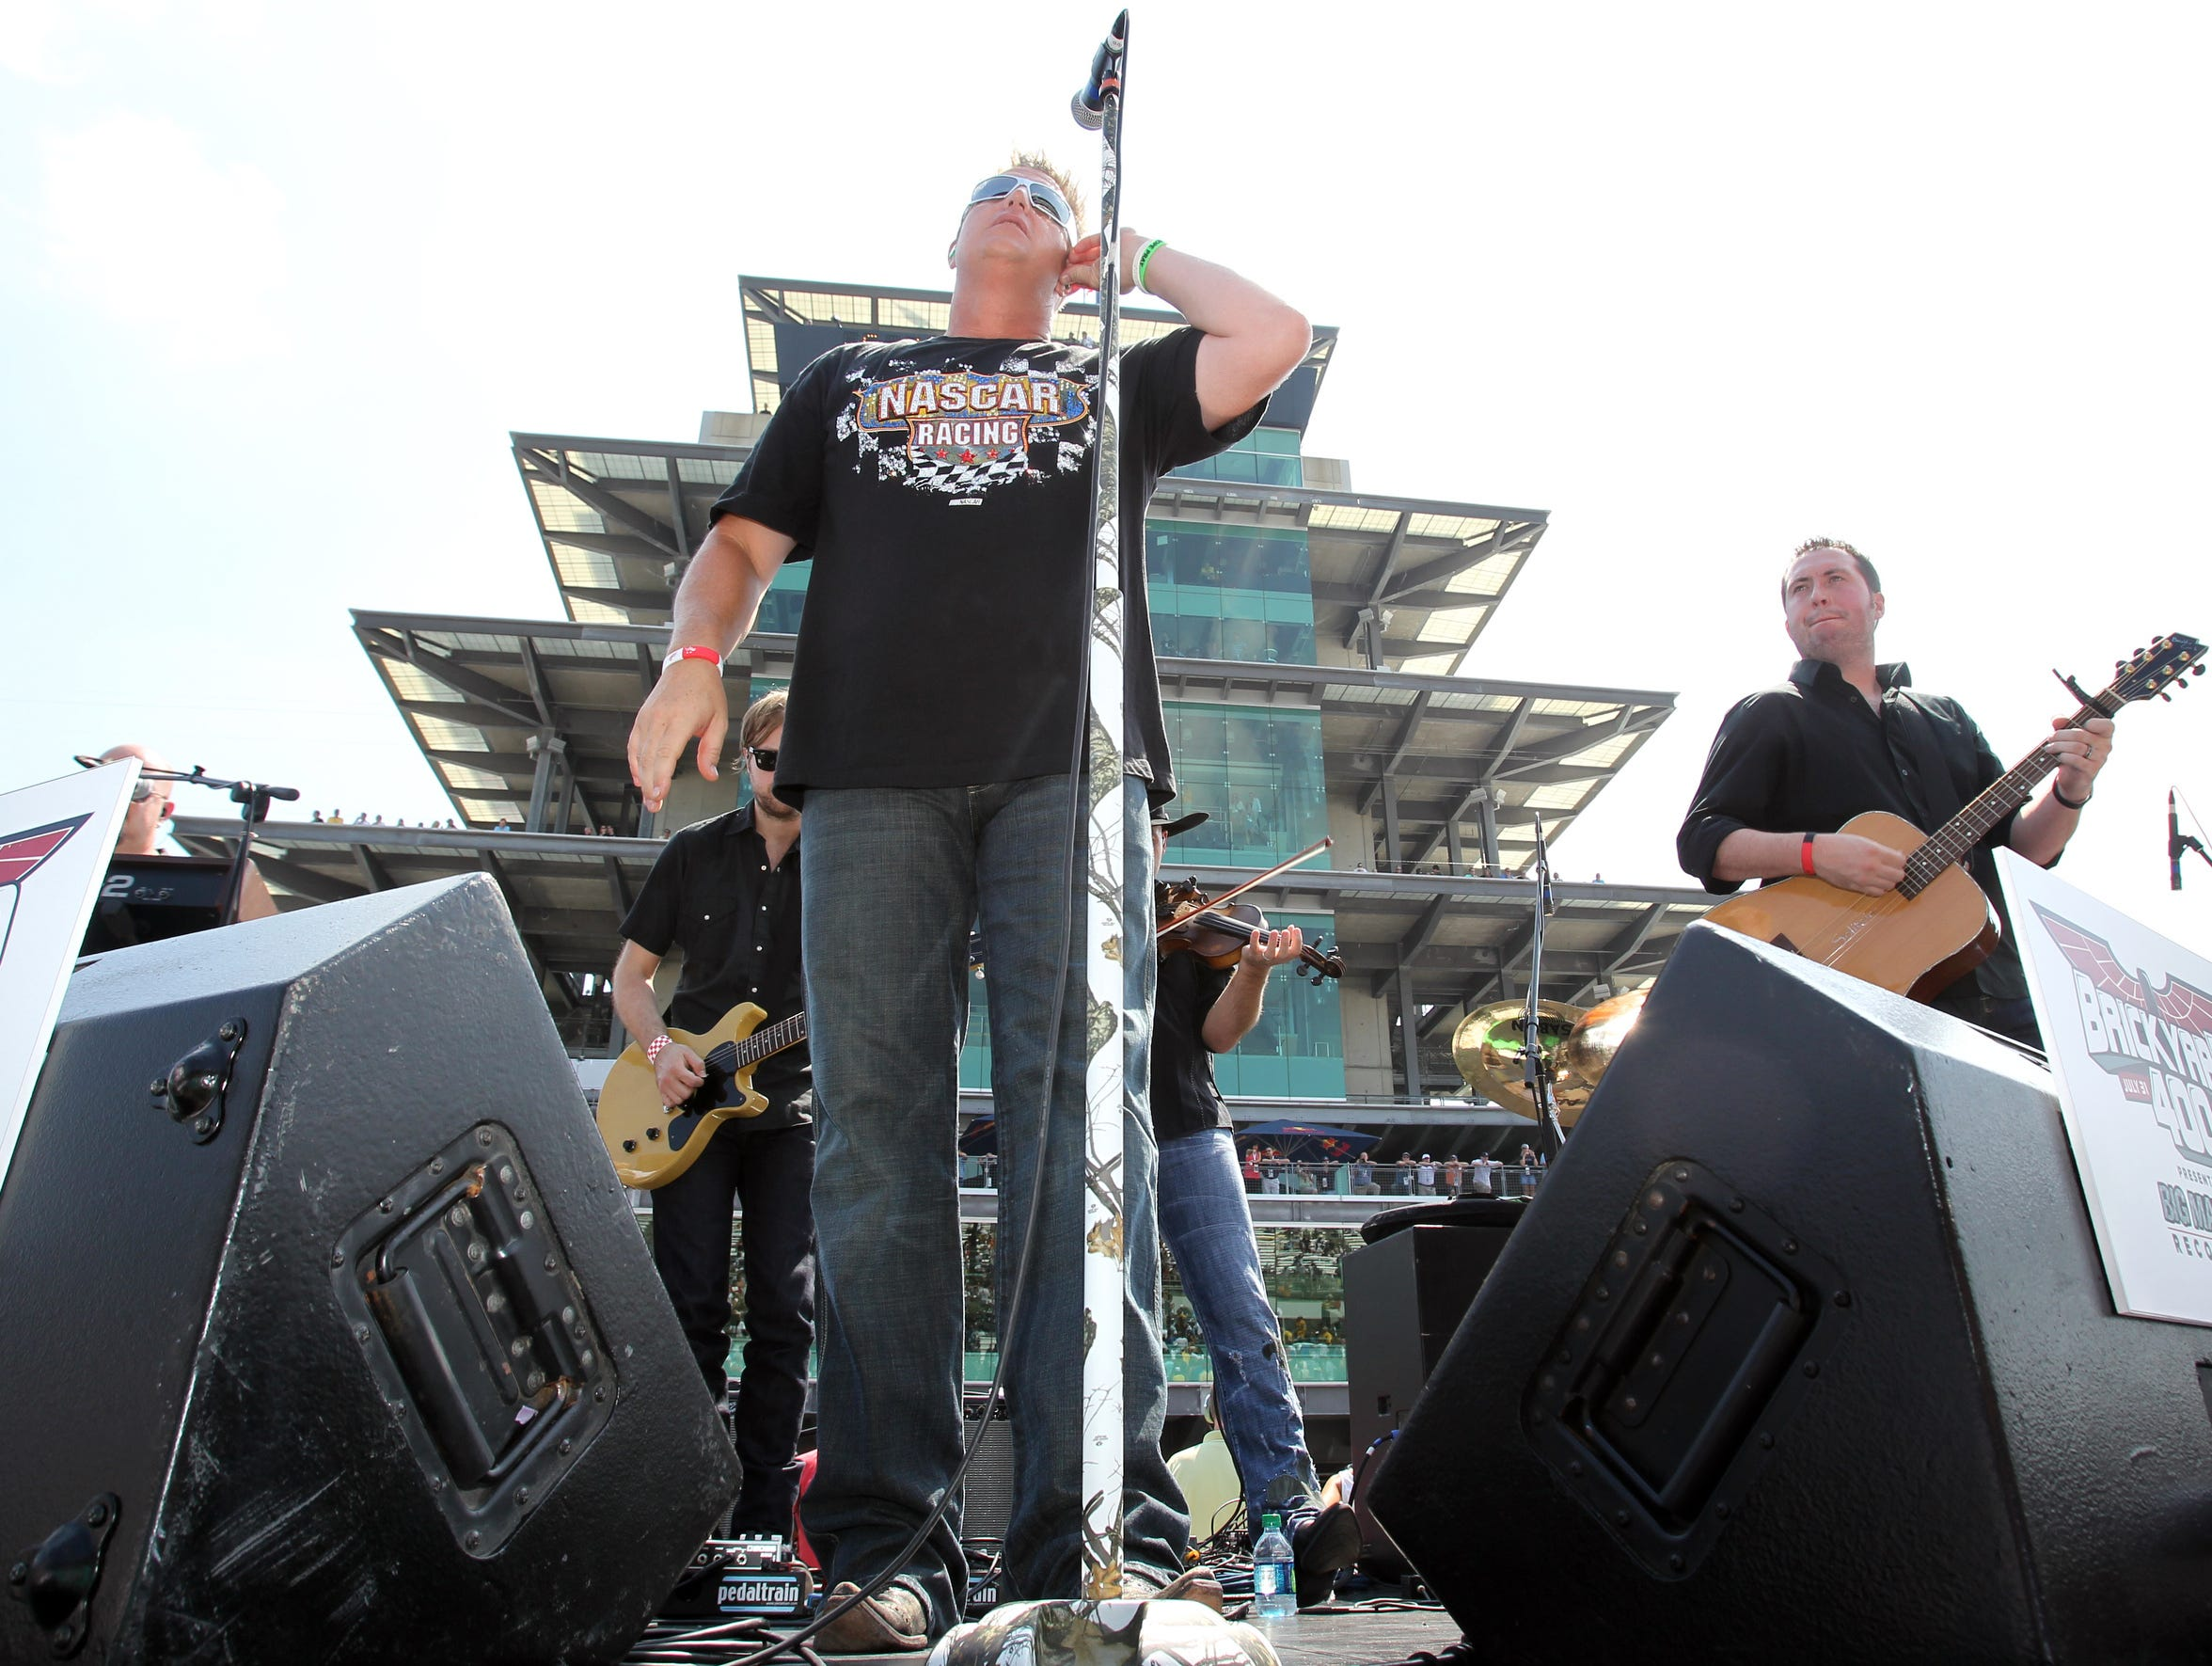 Rascal Flatts performs at the yard of bricks, pre-race action, Brickyard 400, Indianapolis Motor Speedway, Speedway, IN, Sunday, July 31, 2011.